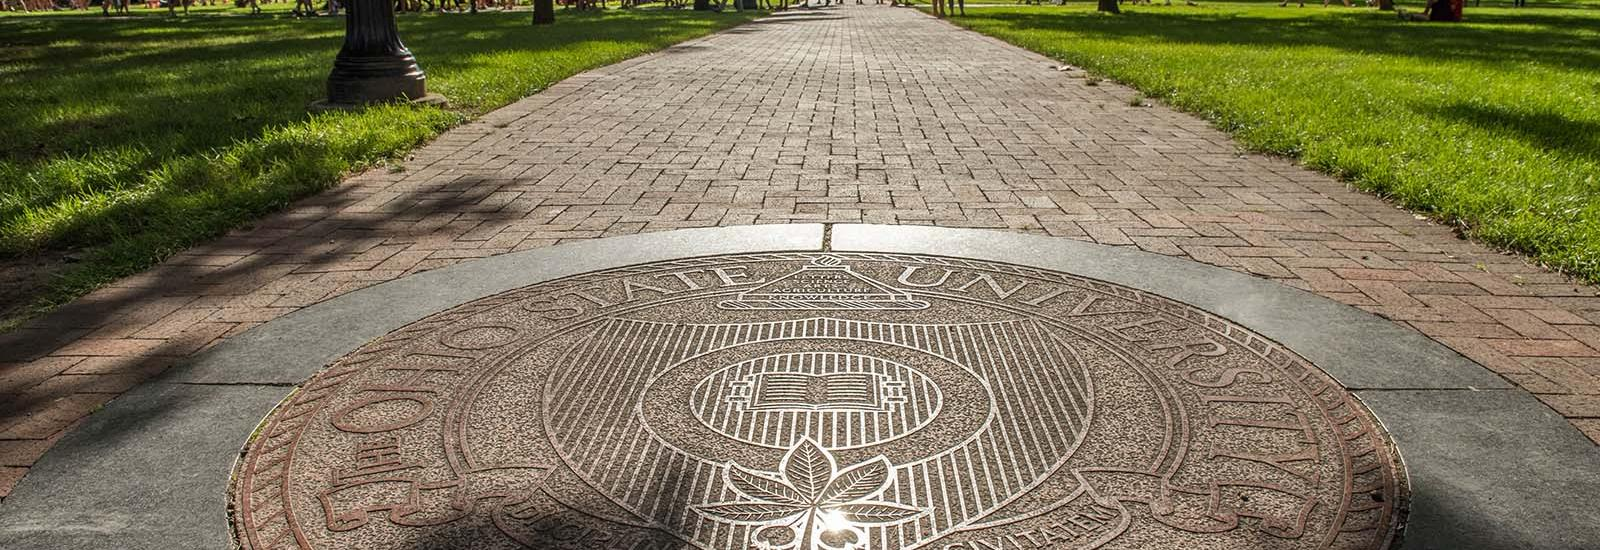 Photograph of university seal on the Oval walkway